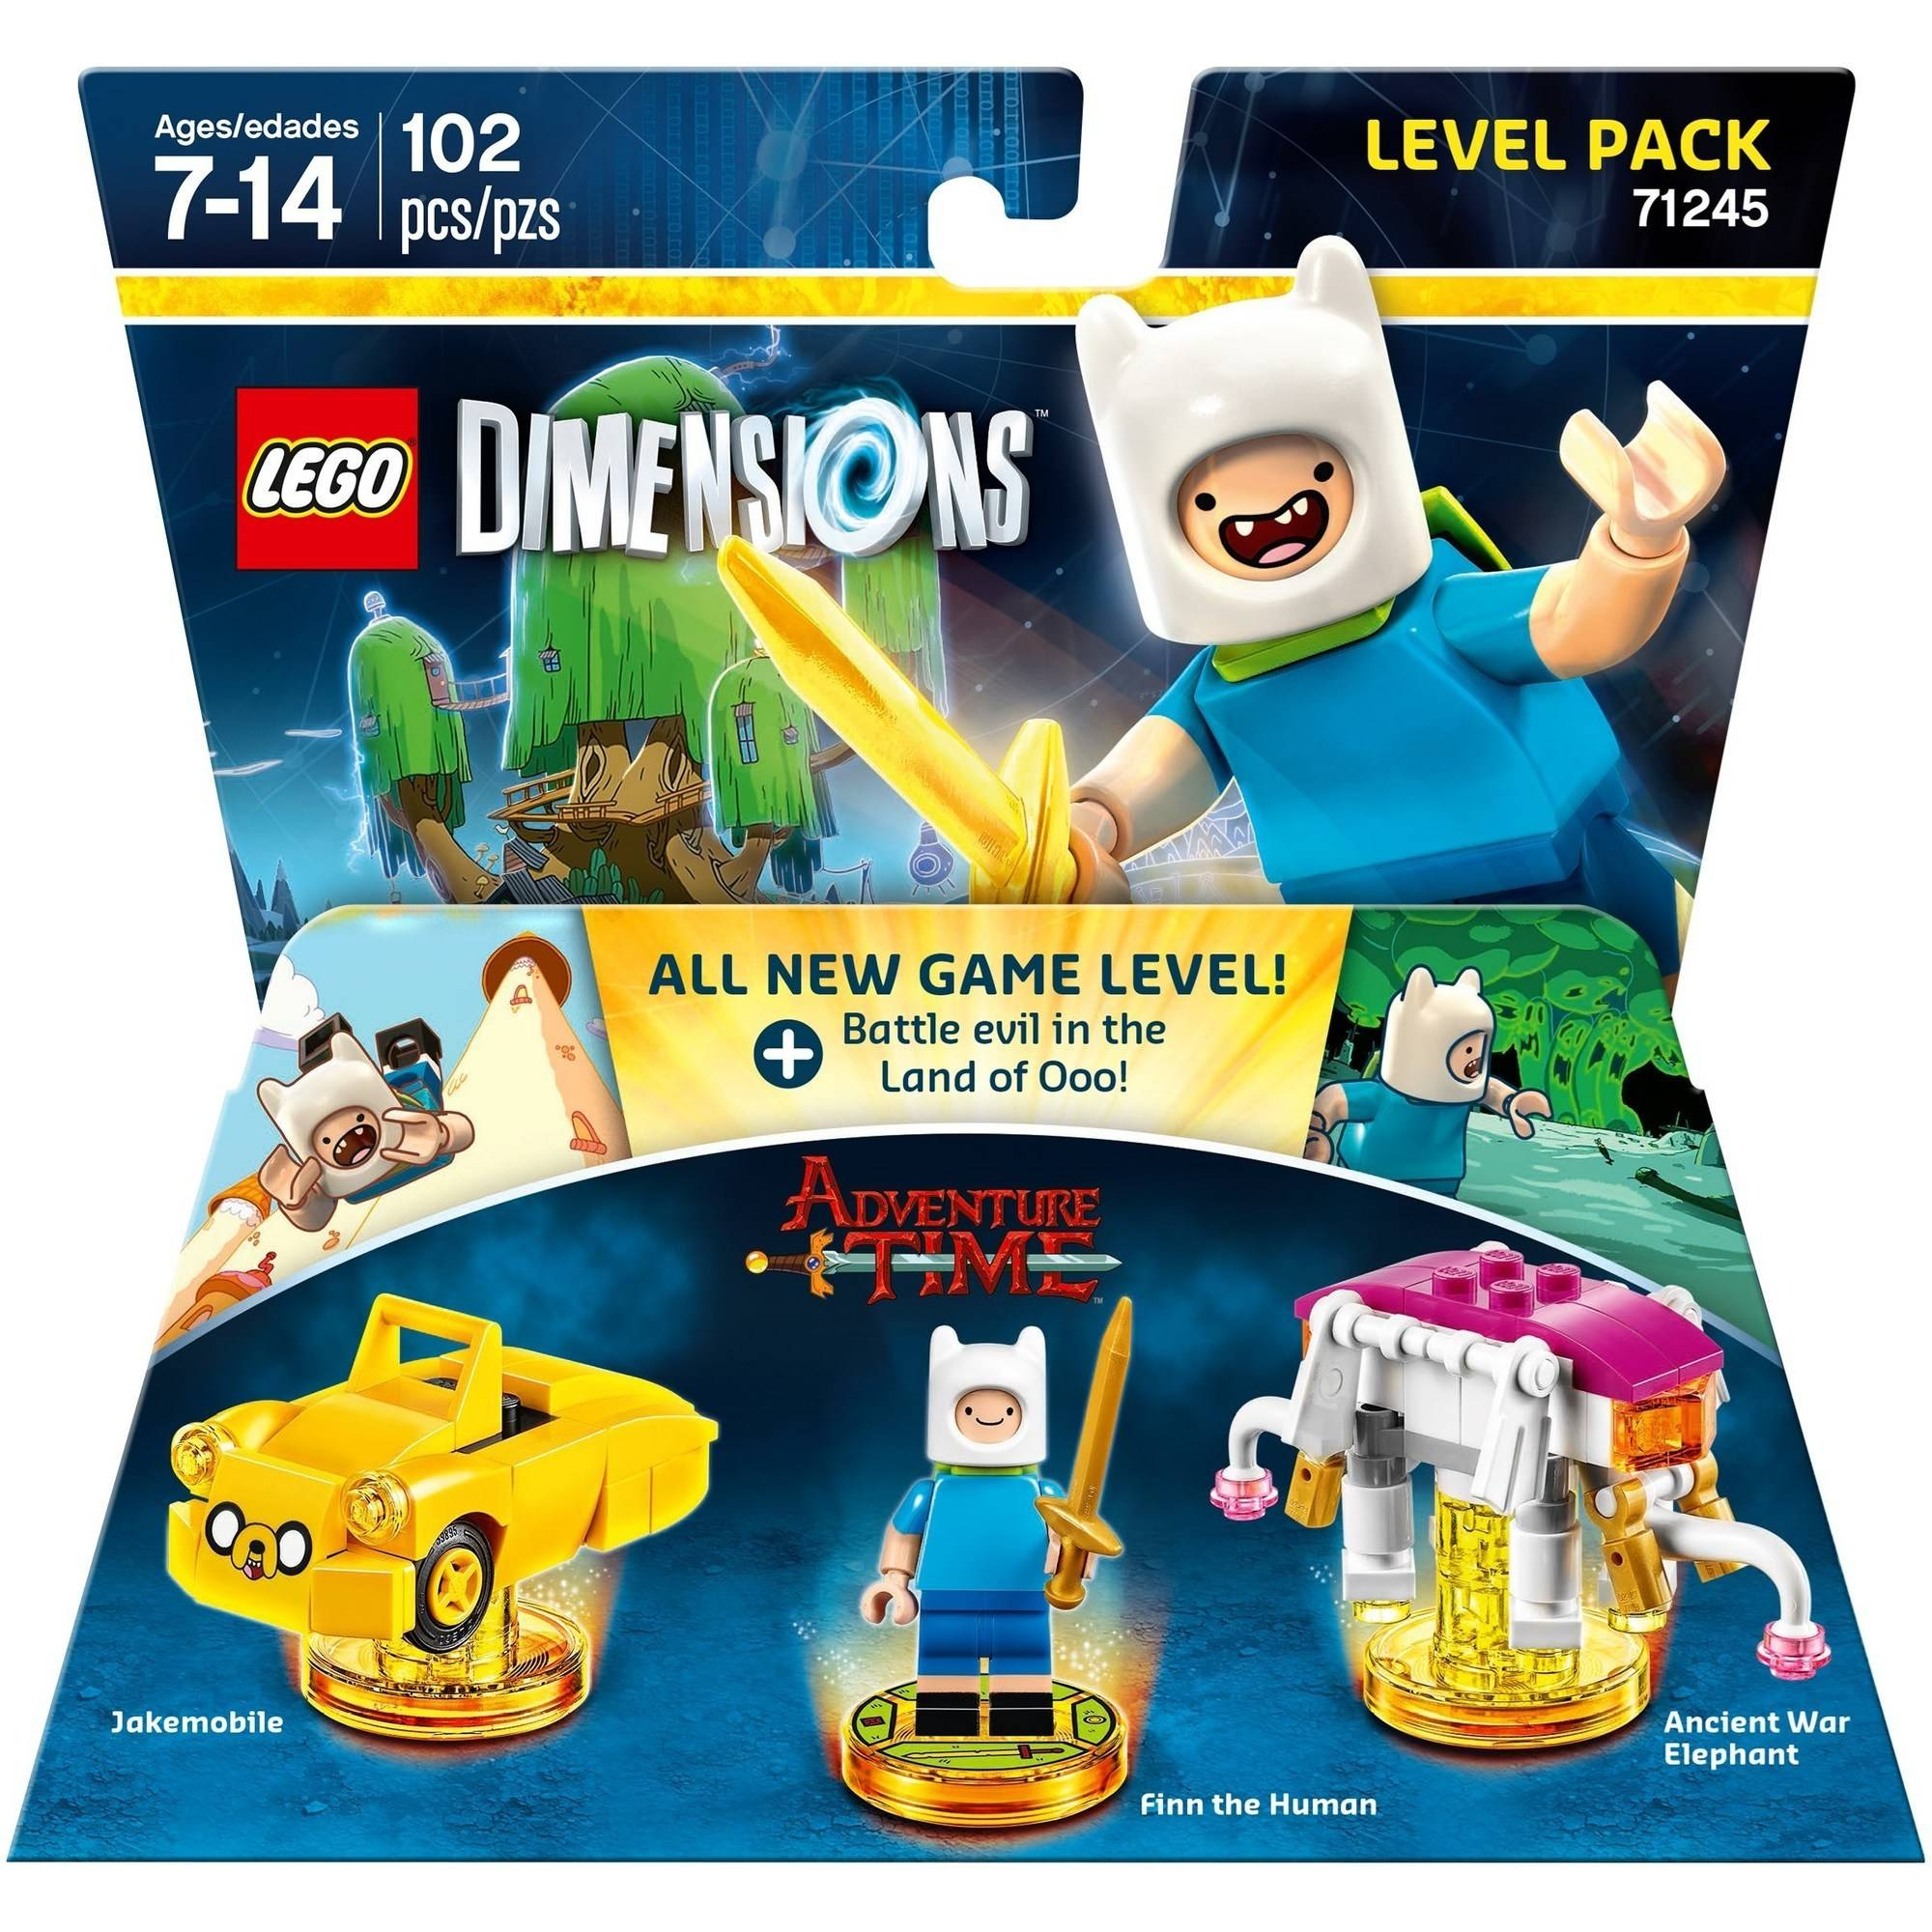 LEGO Dimensions Adventure Time Level Pack (Universal)